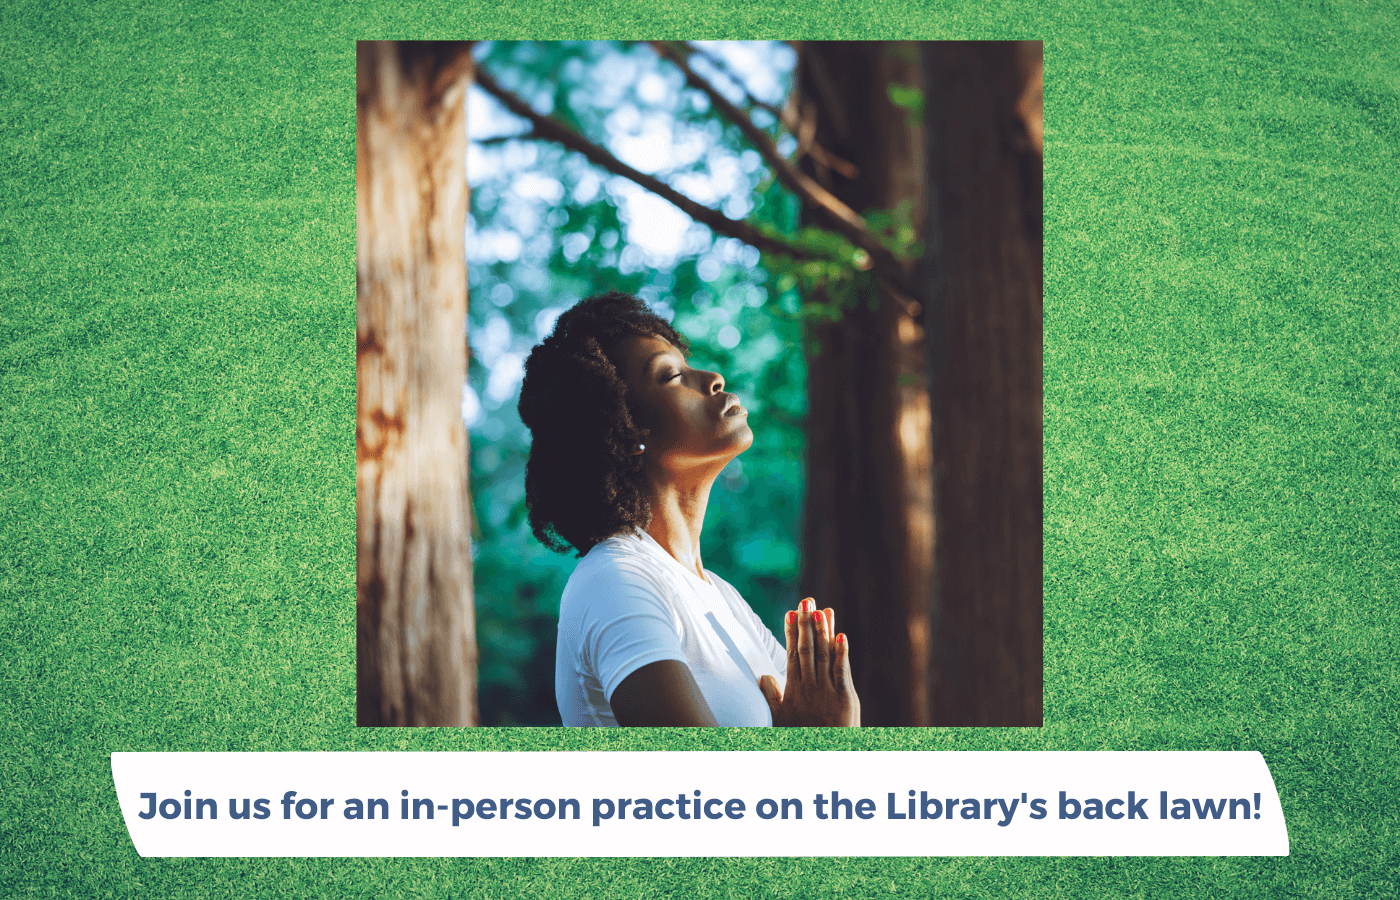 Guided Walking Meditation on library back lawn